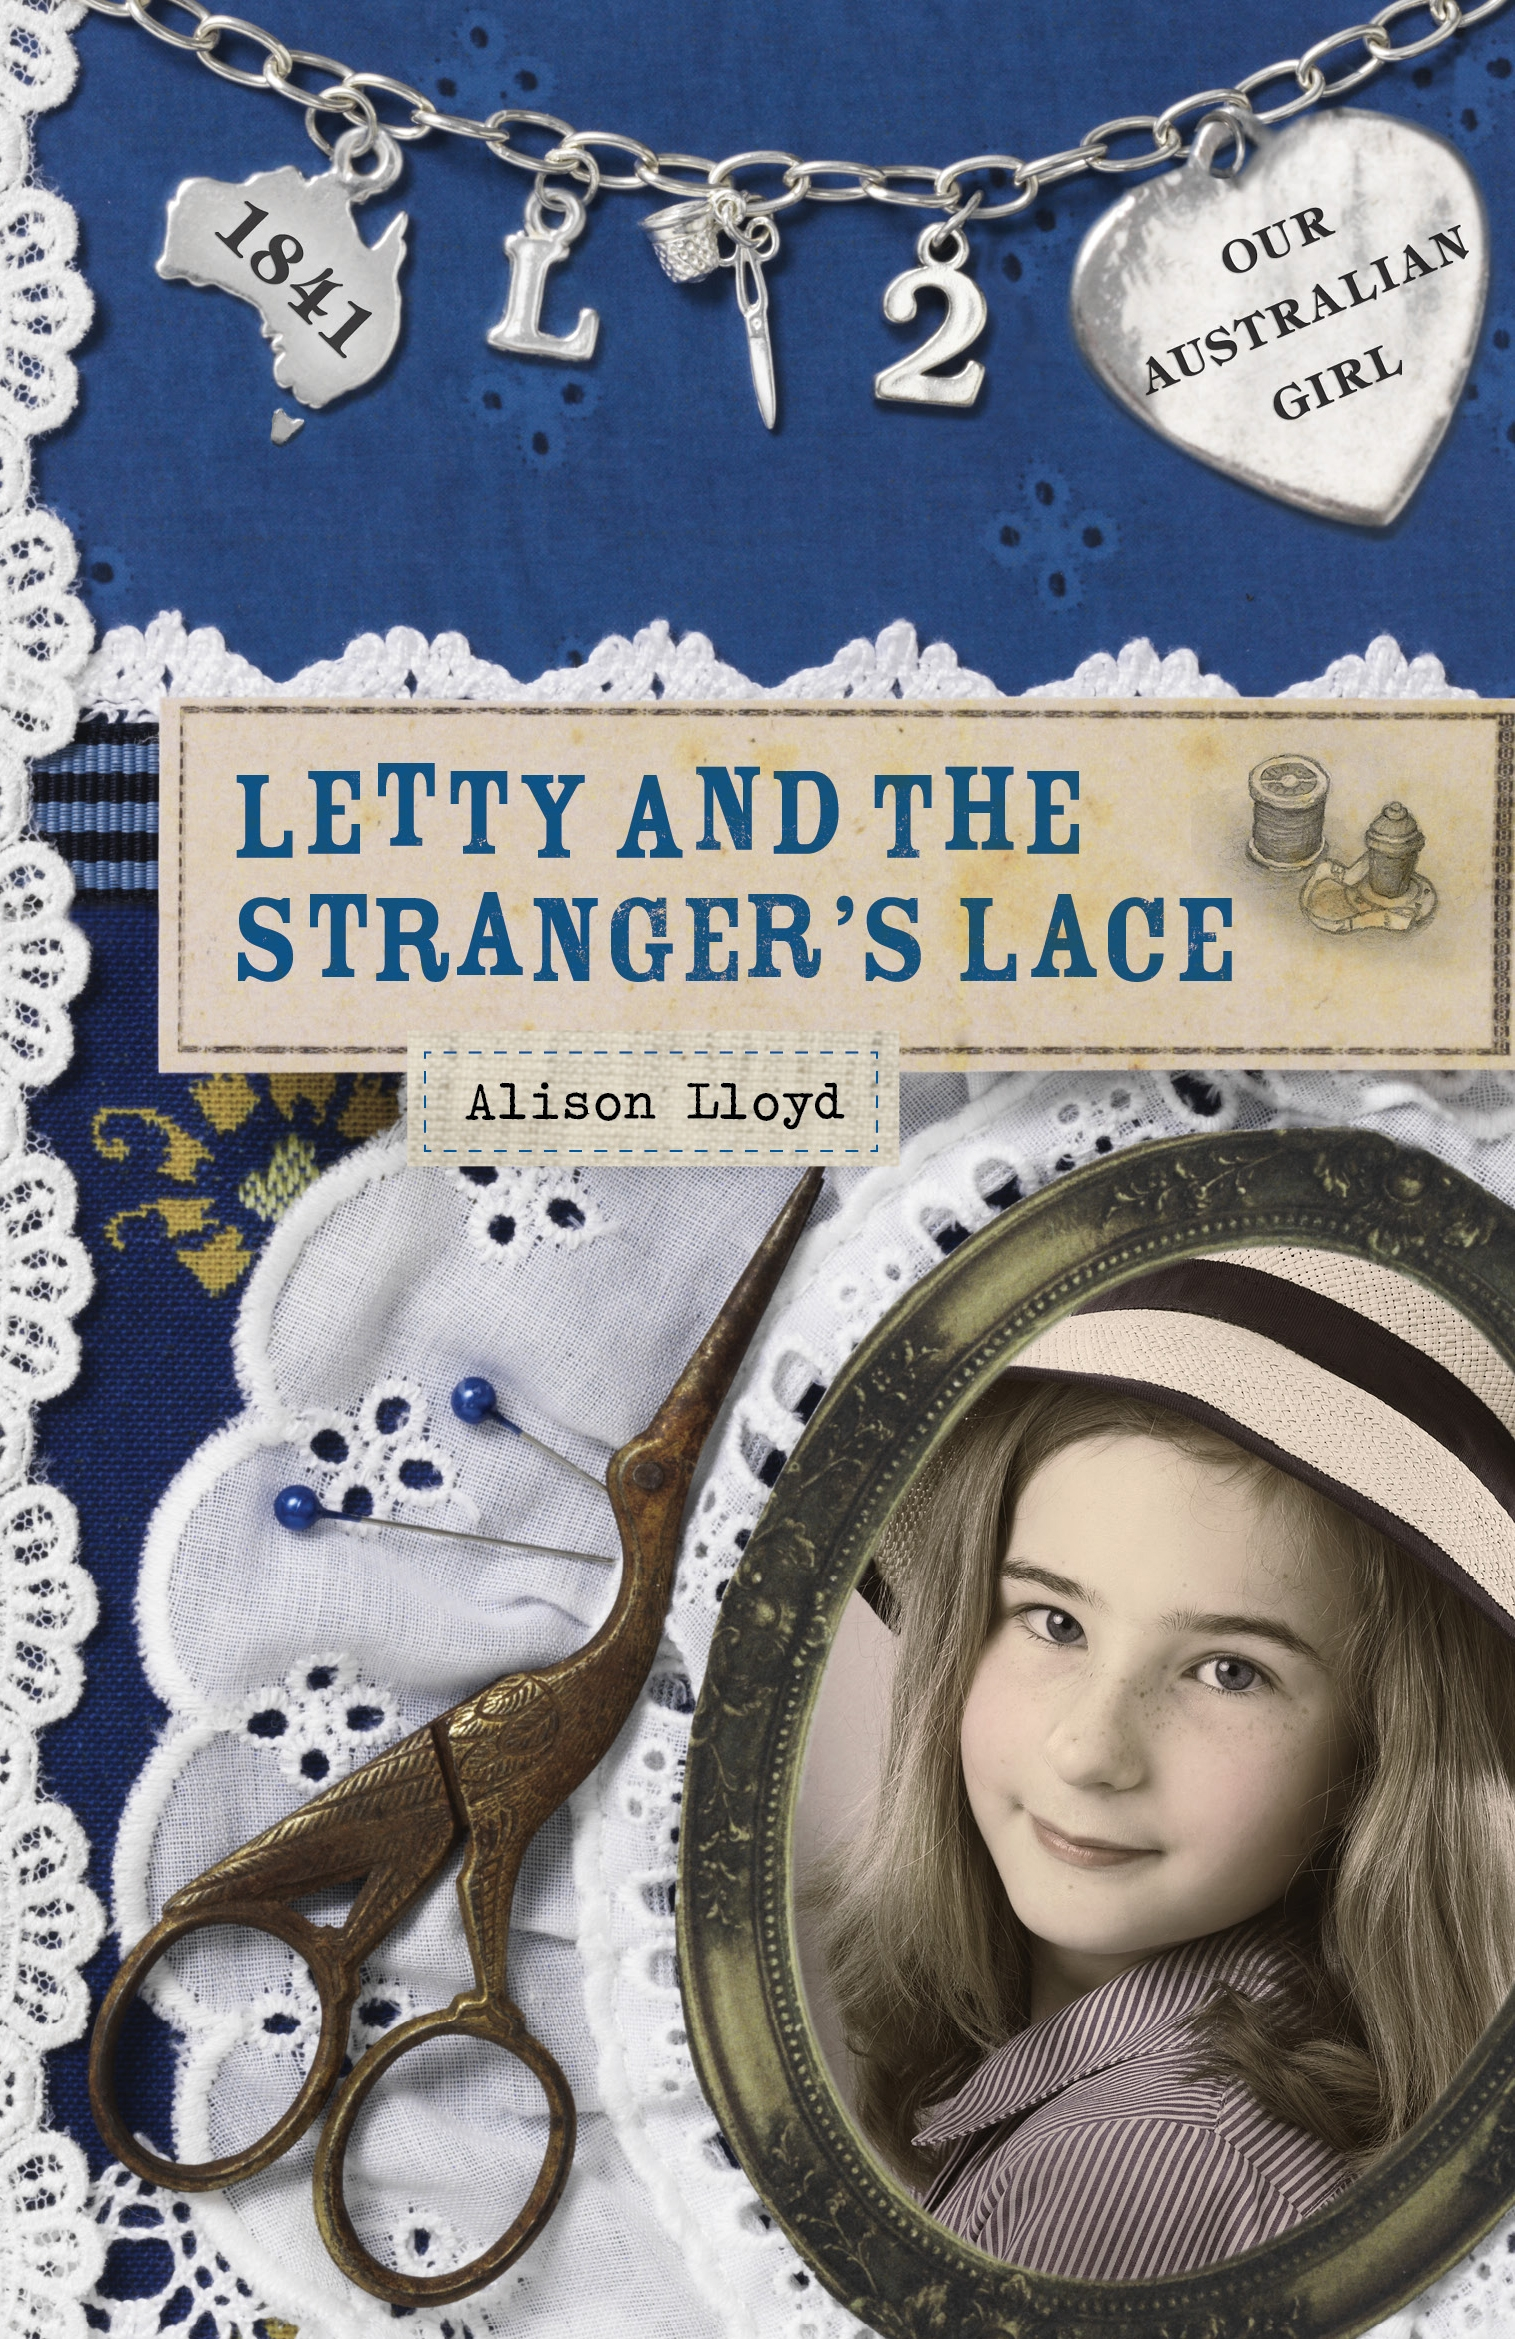 Our Australian Girl Letty And The Strangers Lace Book 2